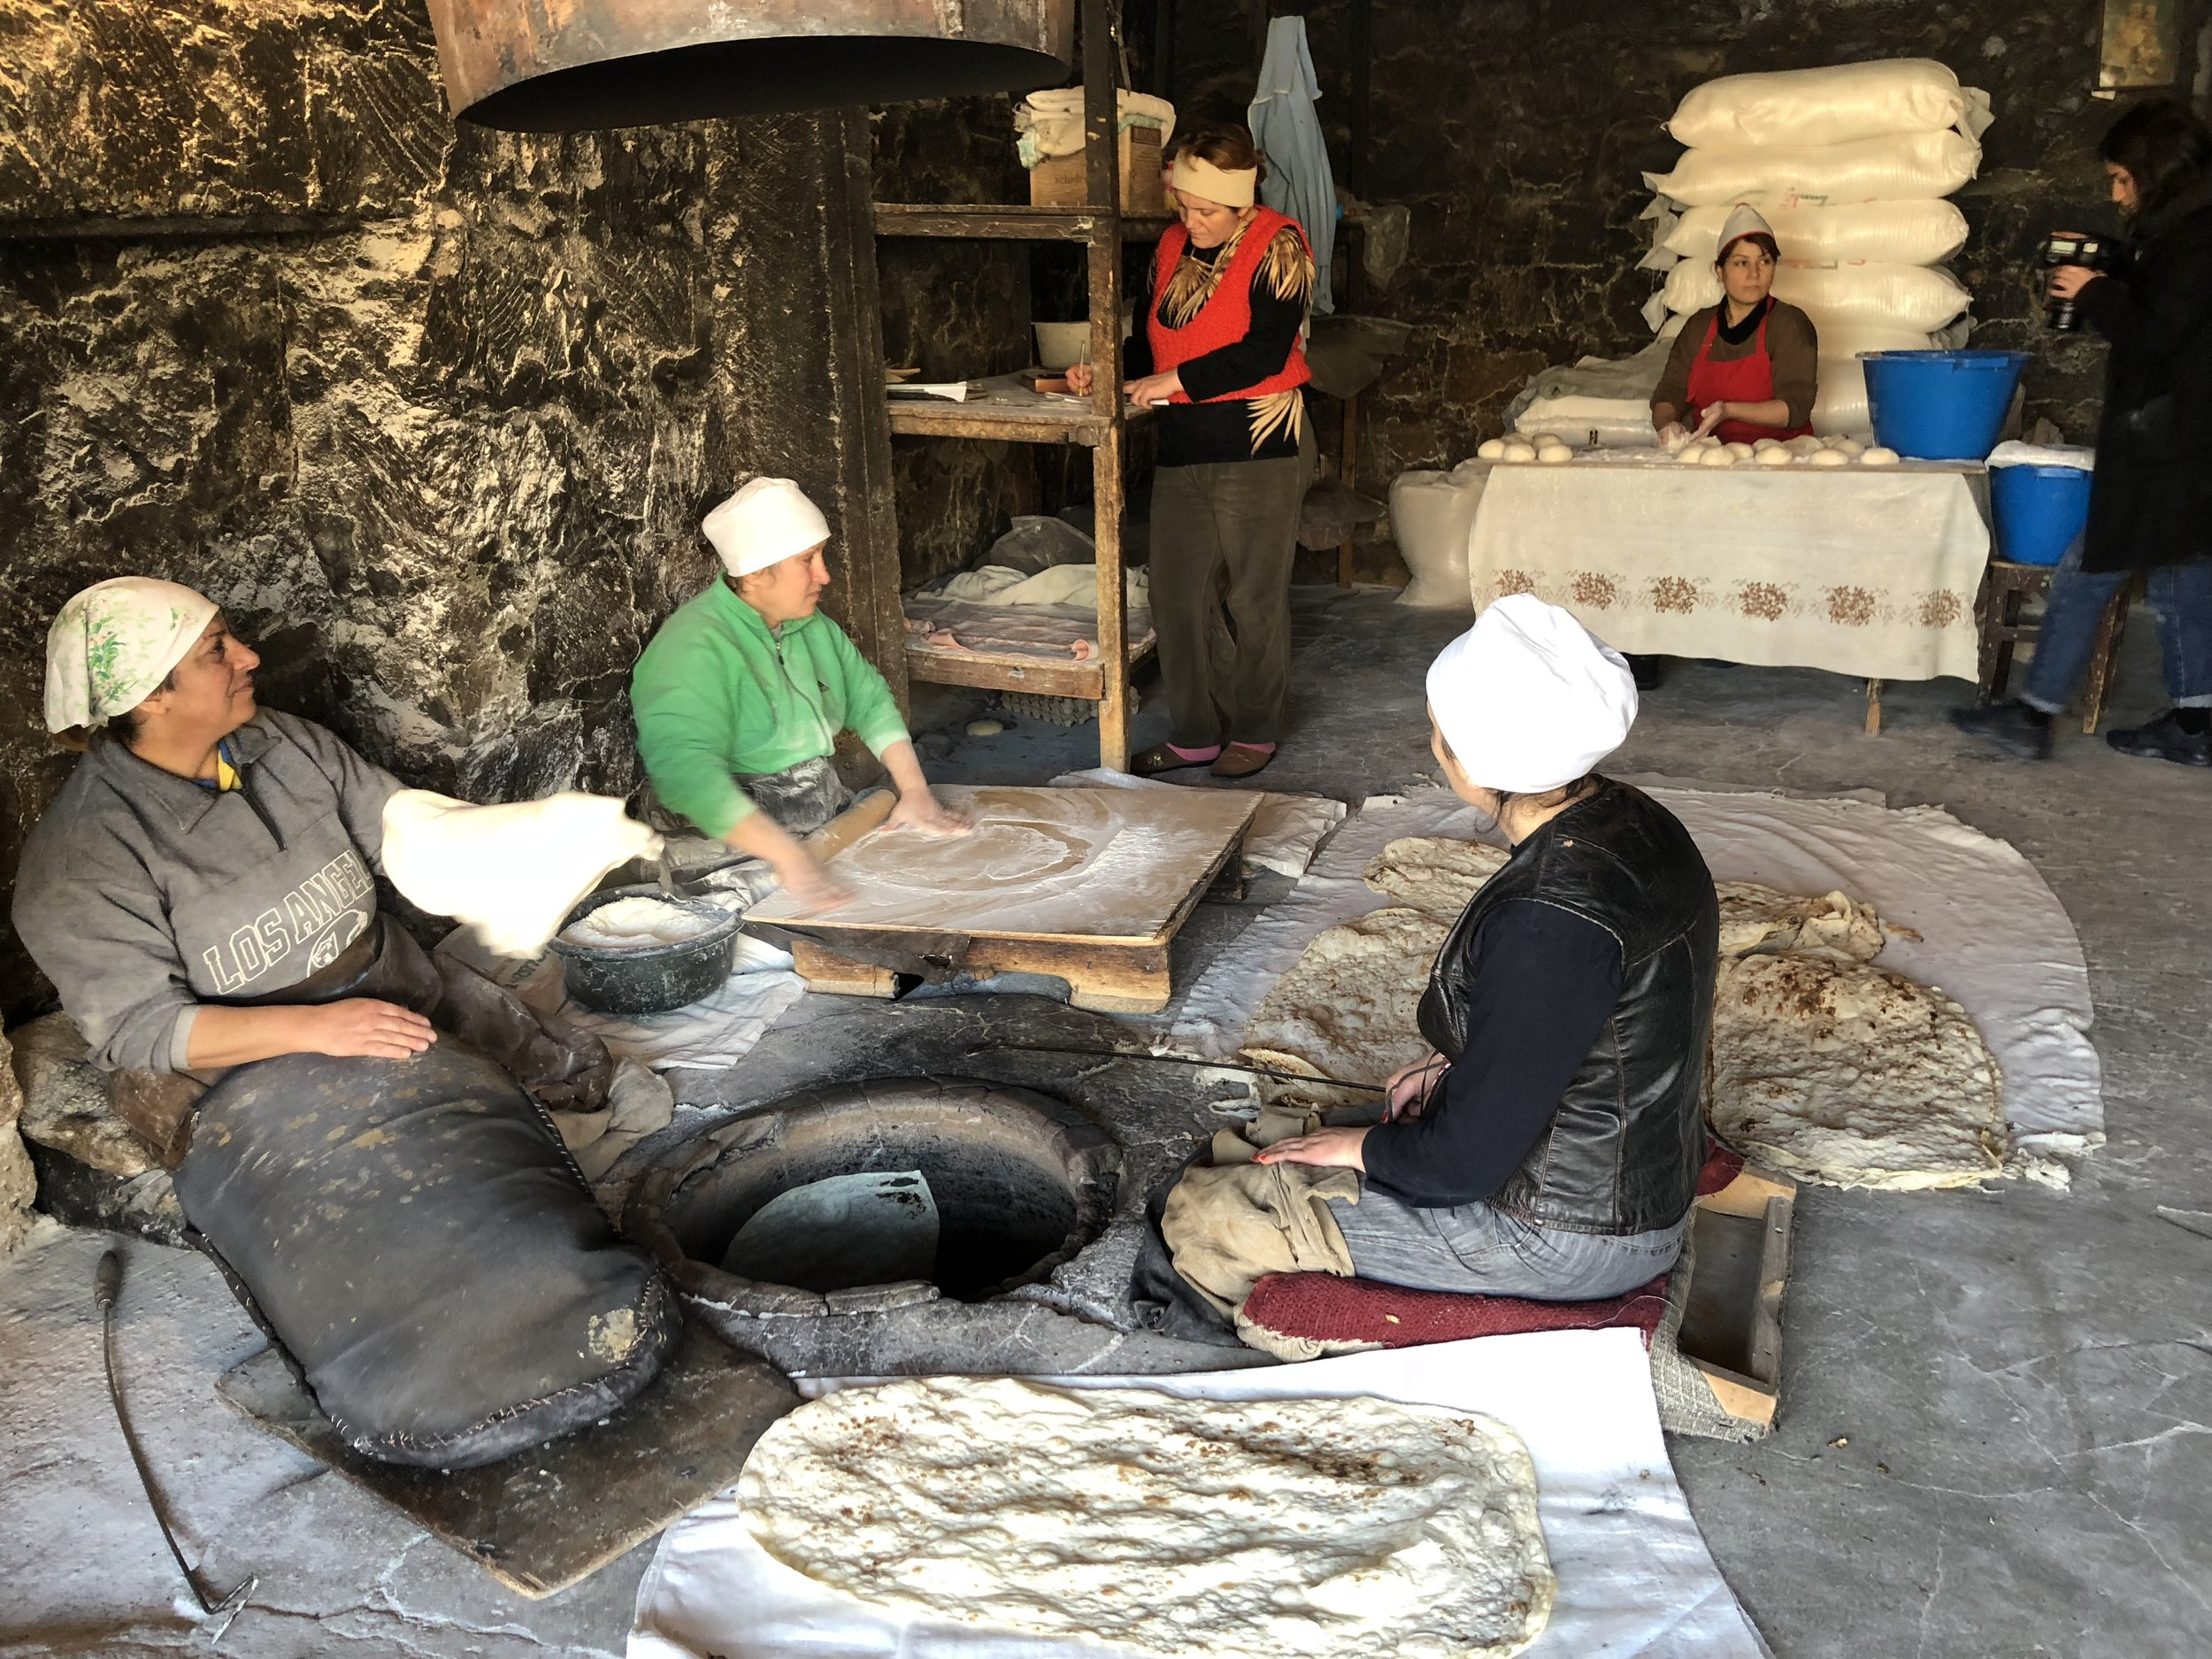 In Argel, four women are needed to mix, roll, bake, and cool the lavash. A fifth woman minds the till, counting change with an abacus when customers bought lavash